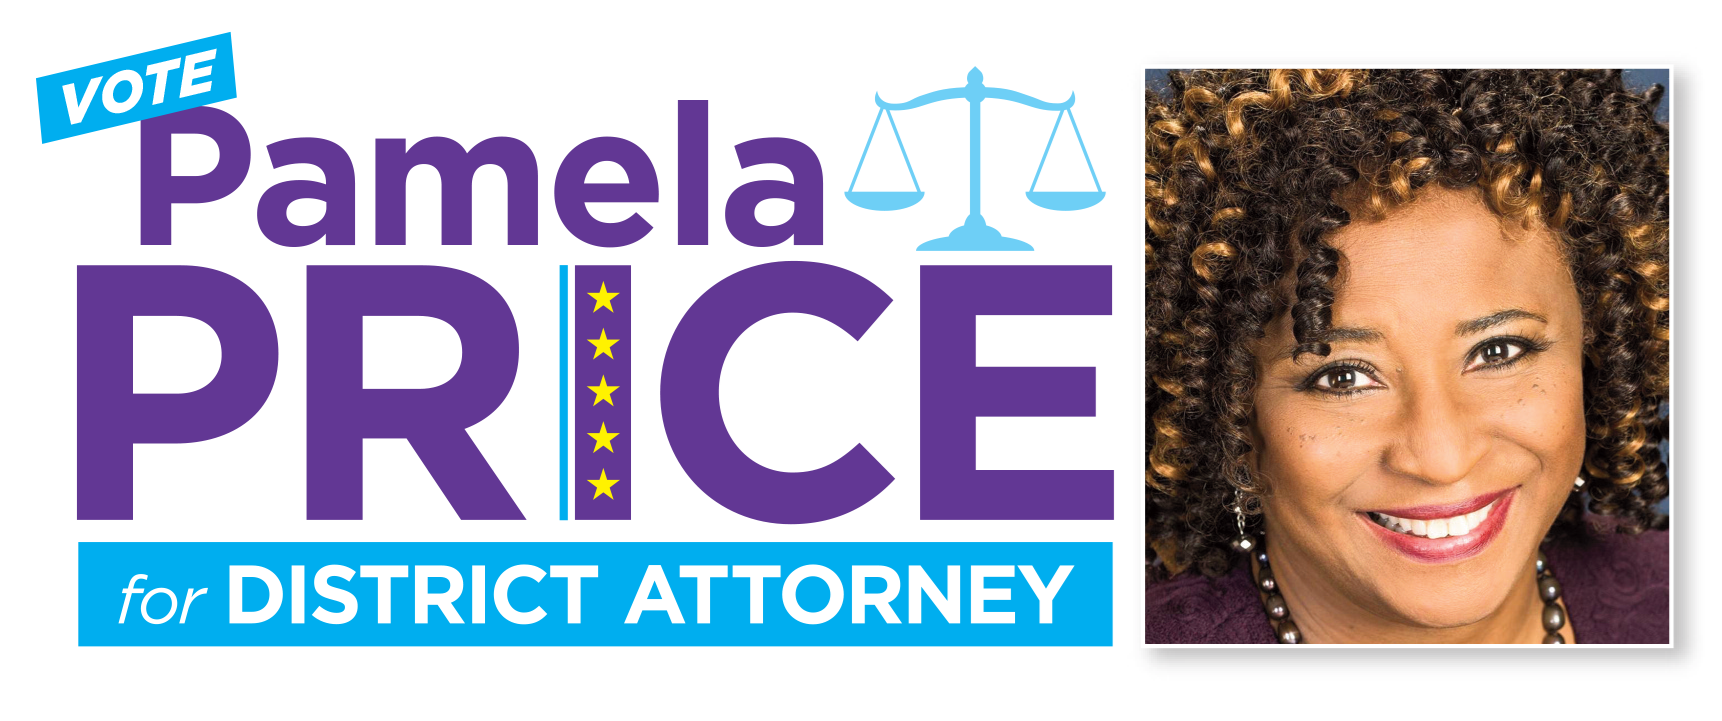 PAMELA PRICE FOR DISTRICT ATTORNEY 2022